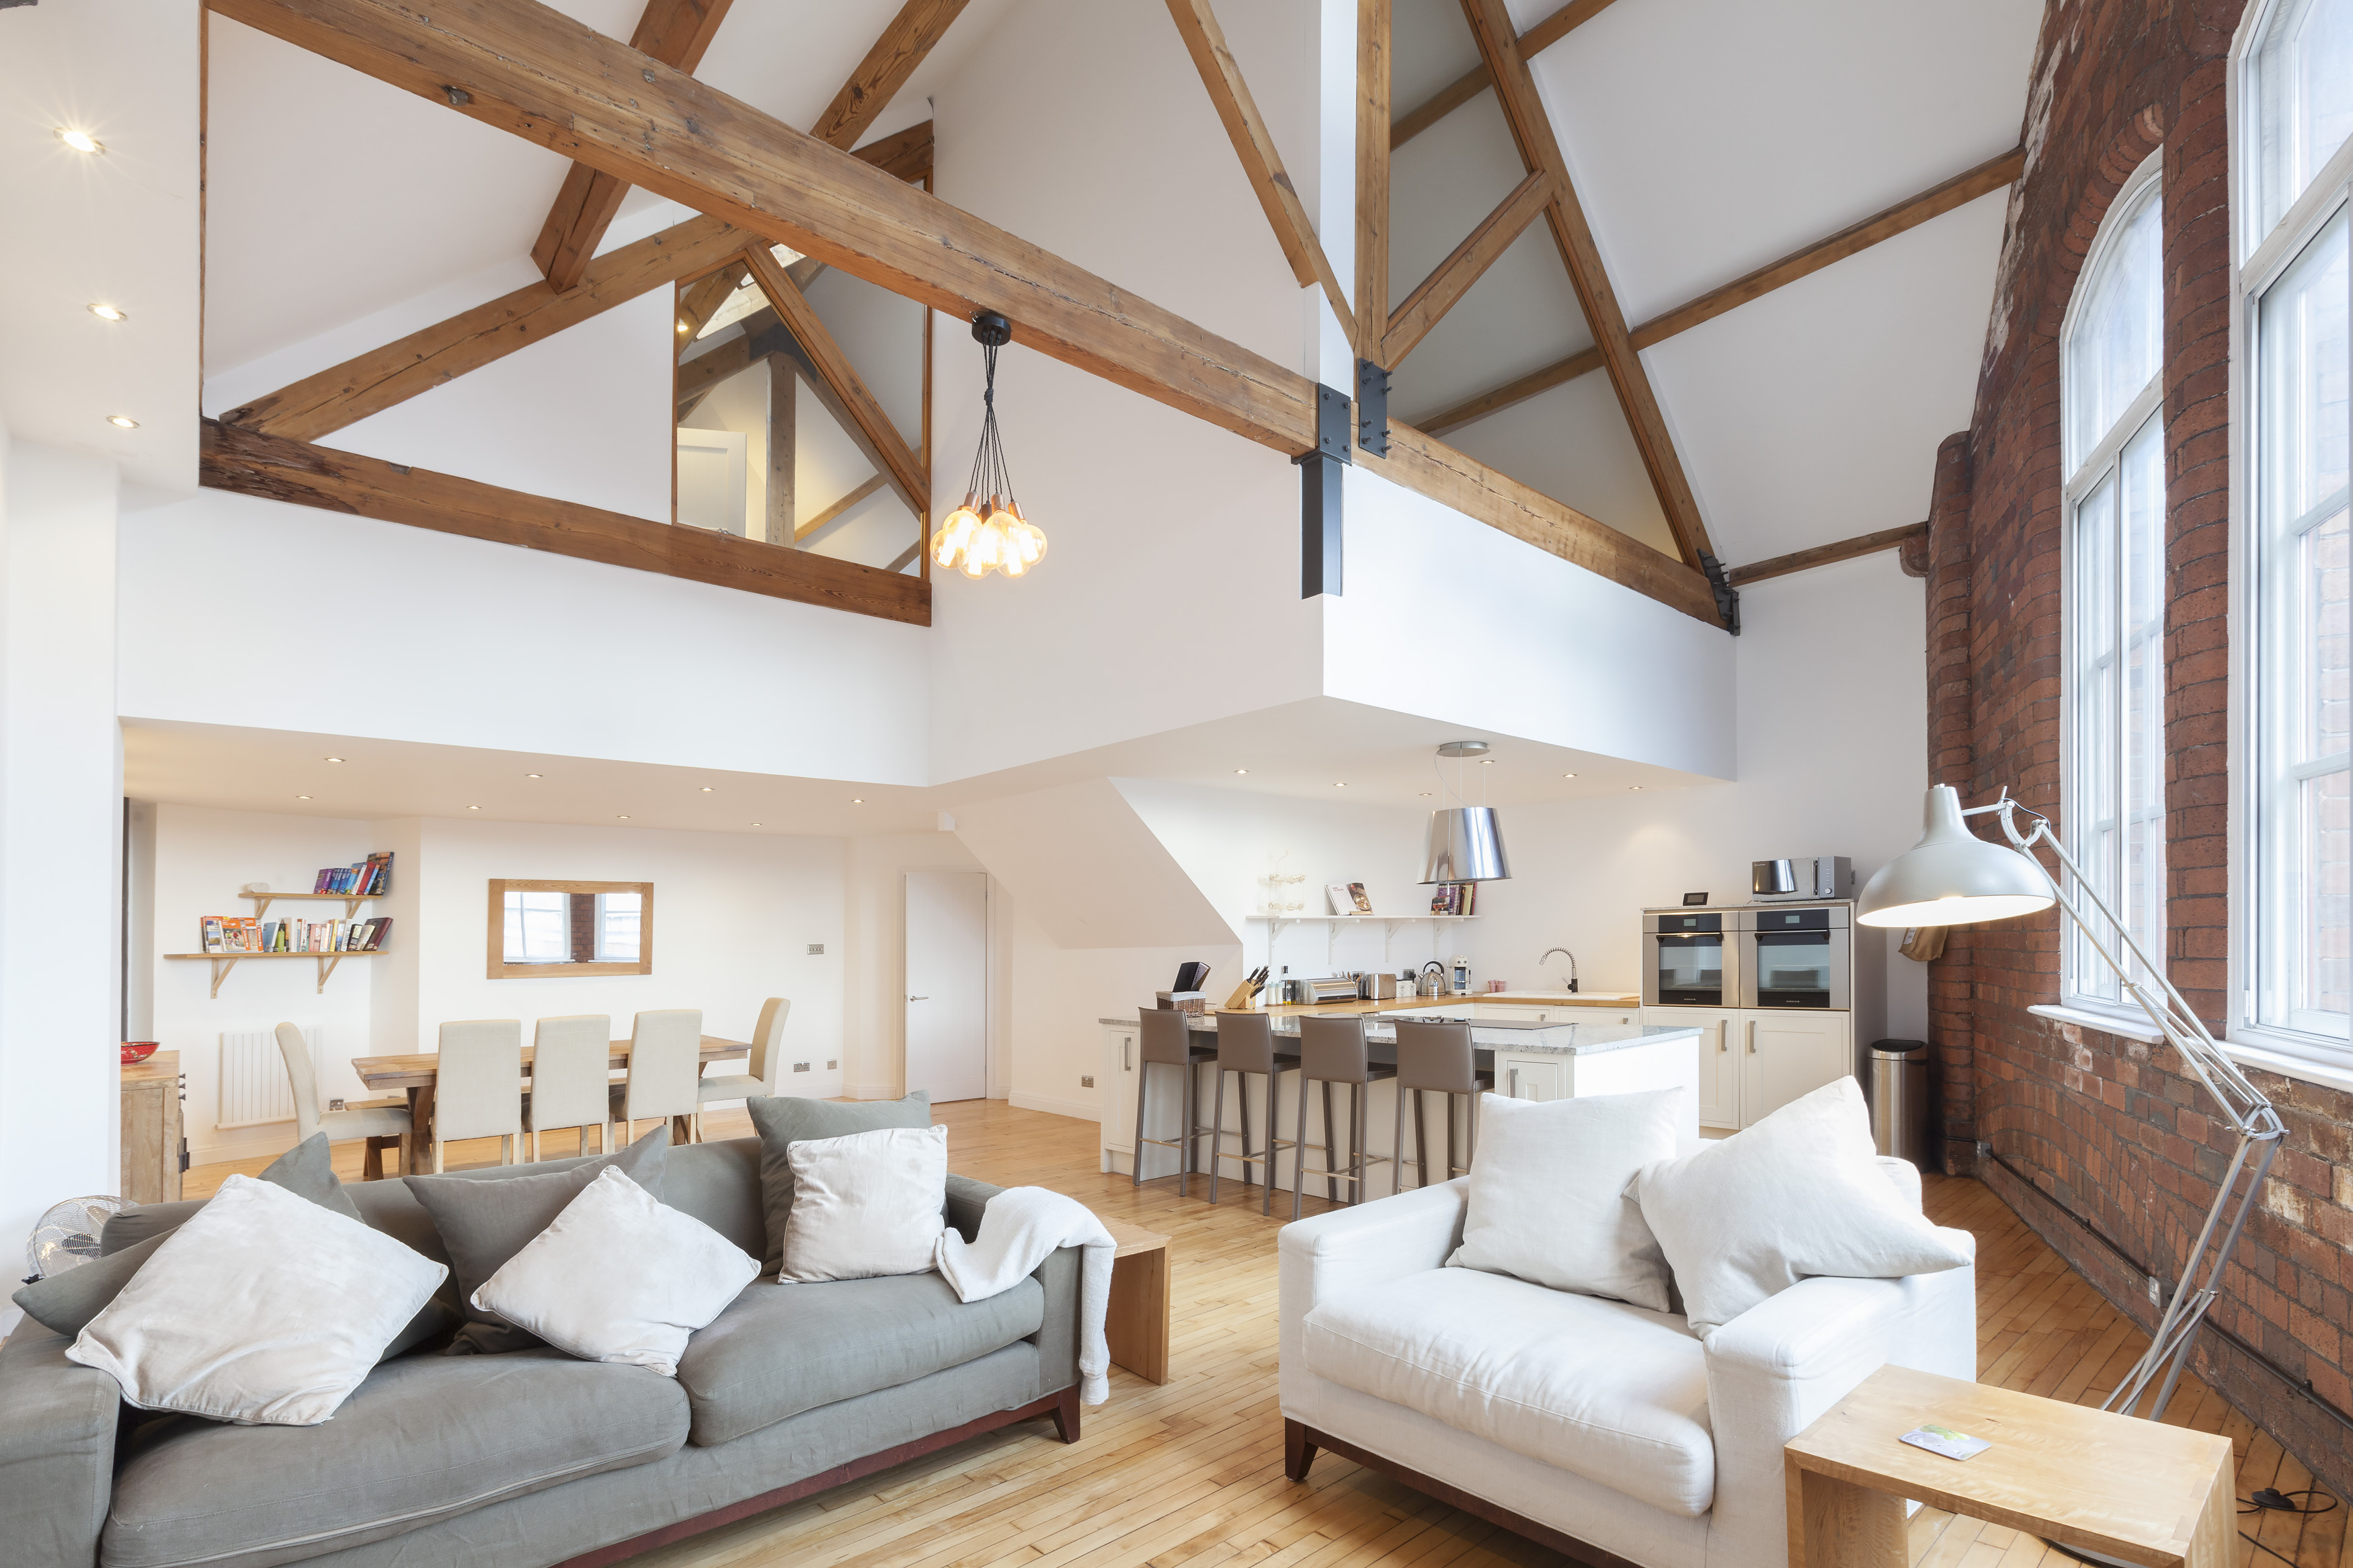 Incredible Loft Apartment Central Free Parking Lofts For Rent In Leeds England United Kingdom